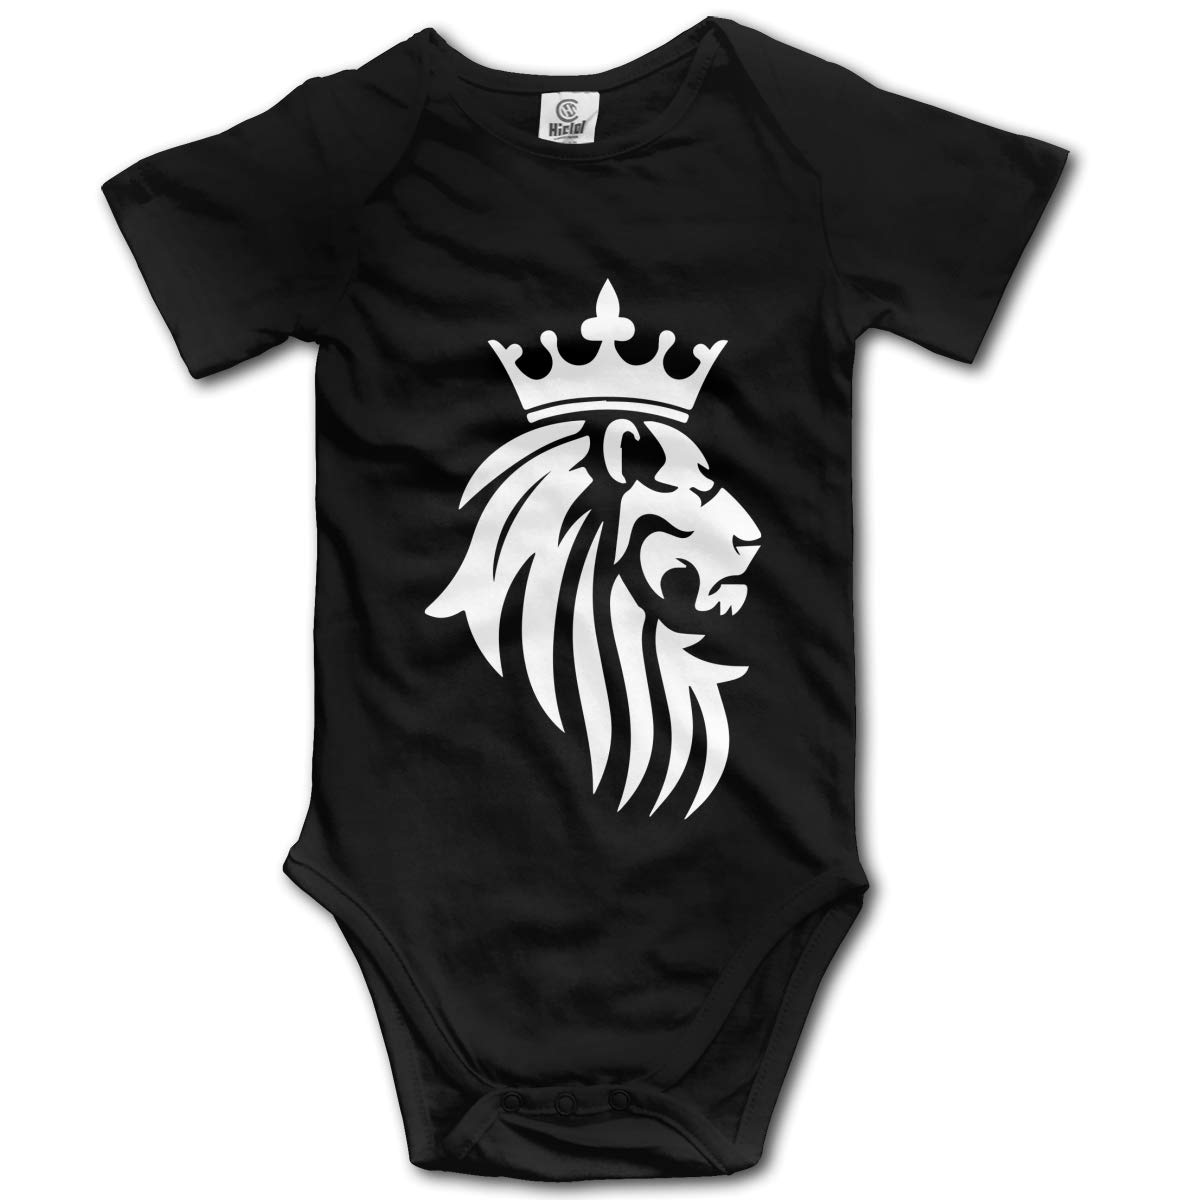 J122 Baby Boys Lion Short Sleeve Climbing Clothes Romper Jumpsuit Suit 6-24 Months